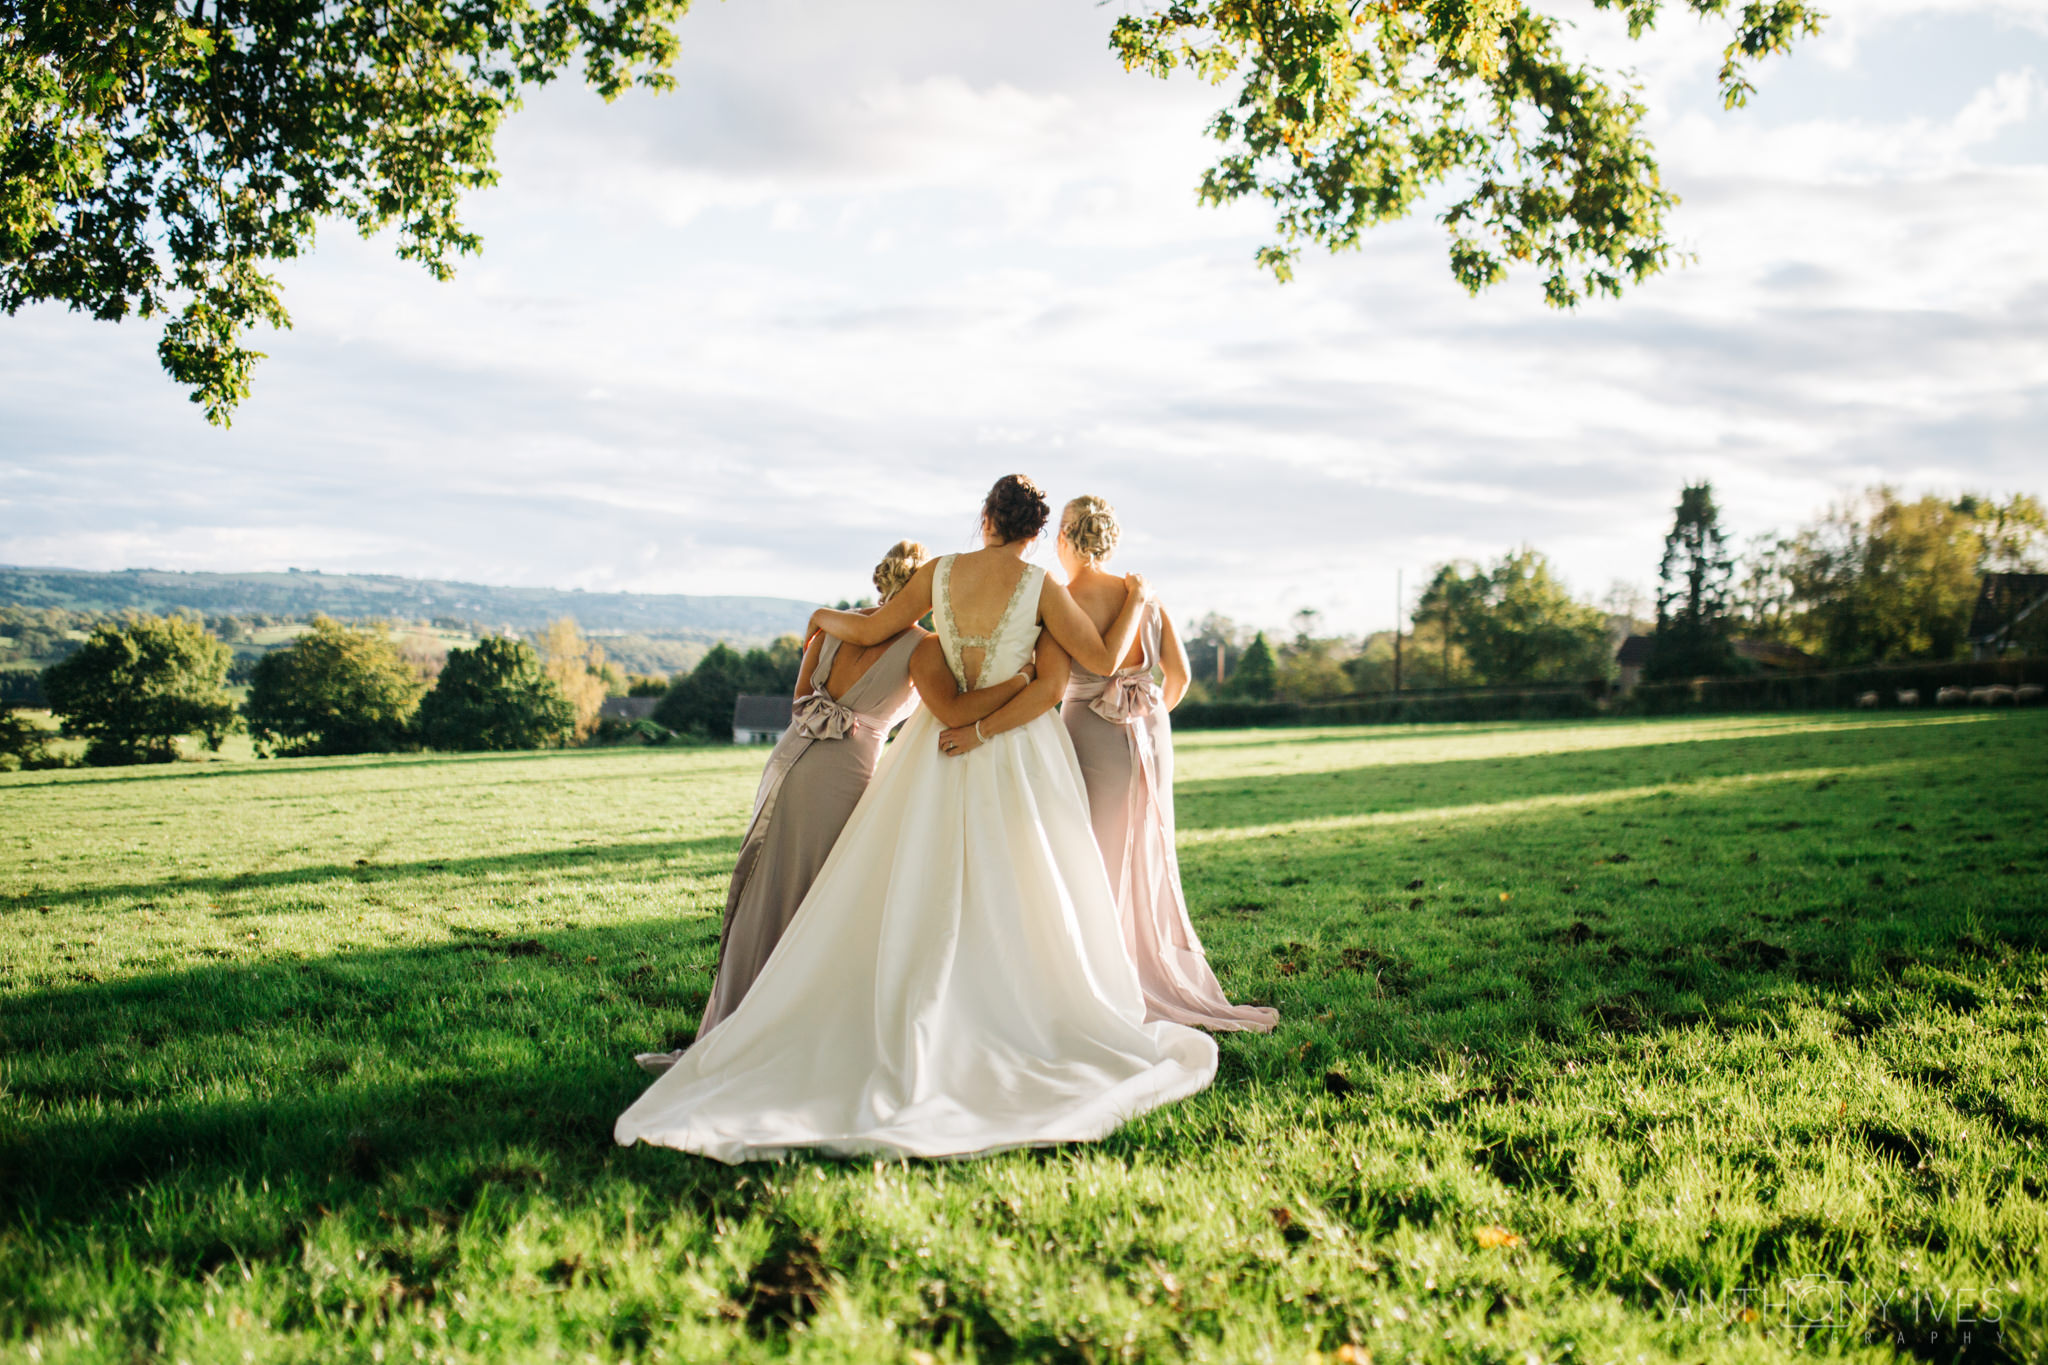 025 Shireburn Arms Preston Wedding Photography.jpg